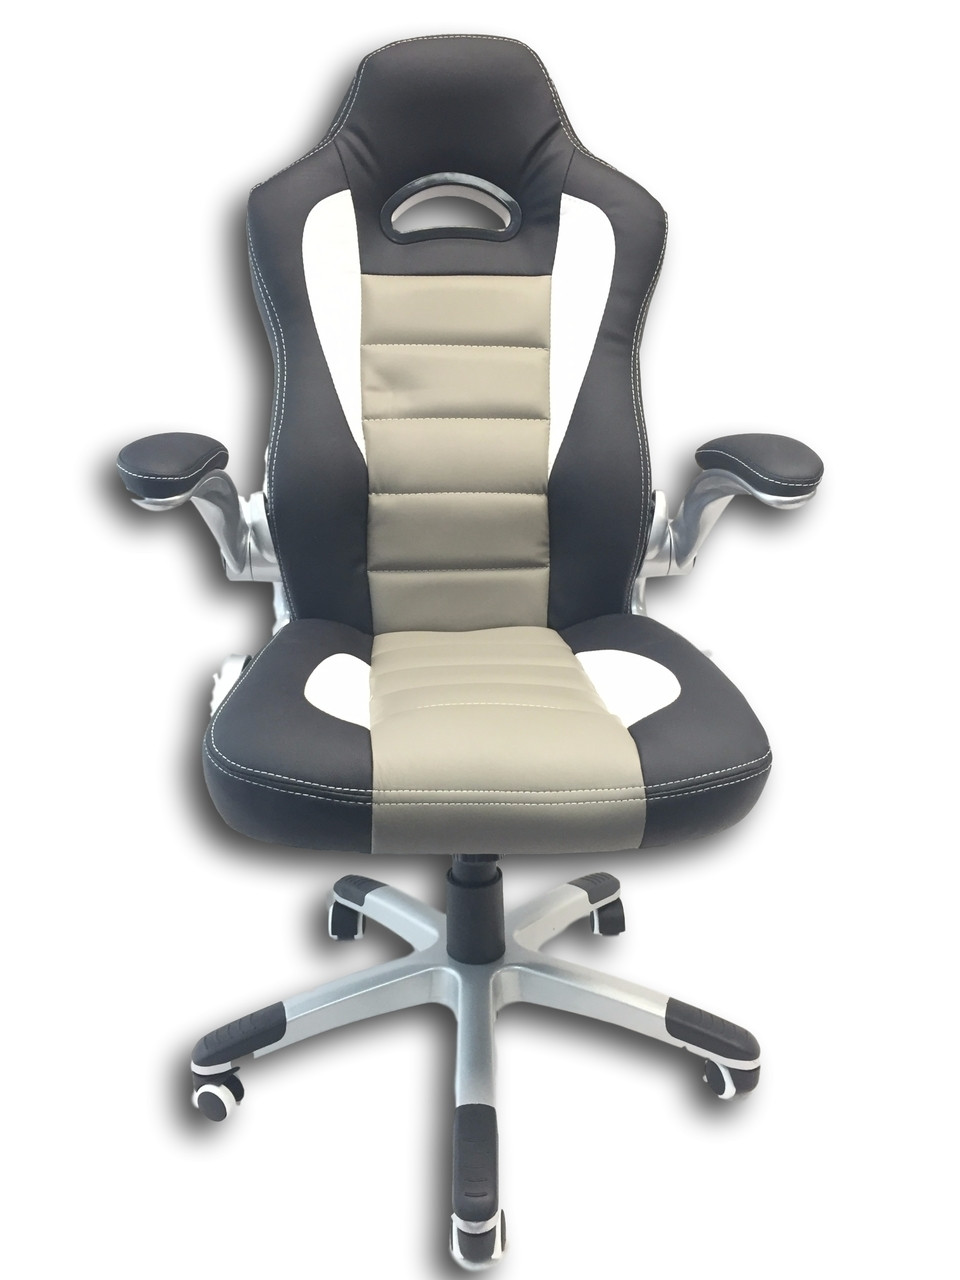 Picture of: Savingbig Racecar Styled Office Chair High Back Leather Computer Home Office Desk Swivel Chair Black Grey White Savingbig Ca